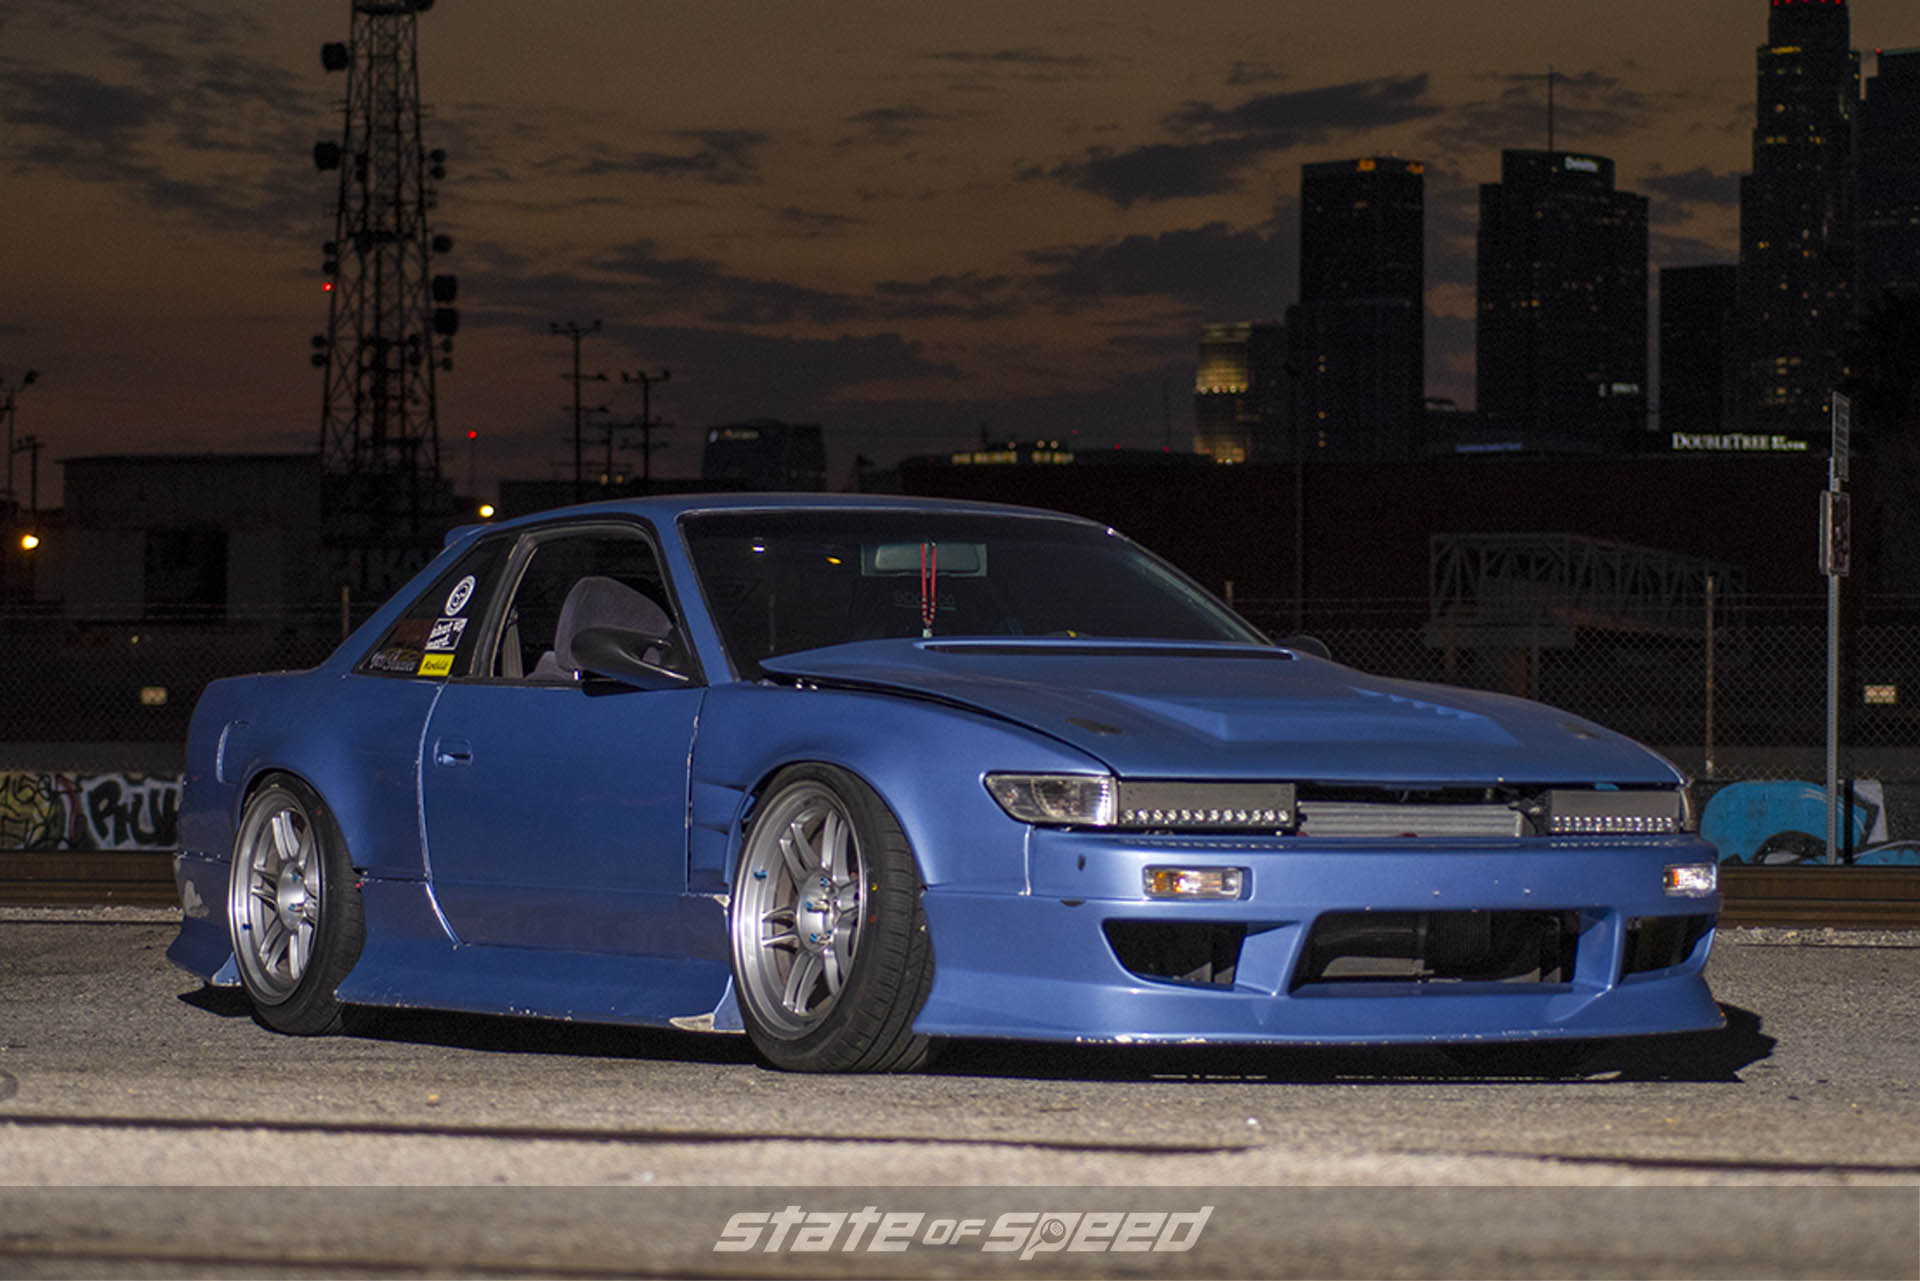 Modded 240sx coupe with s13 front end